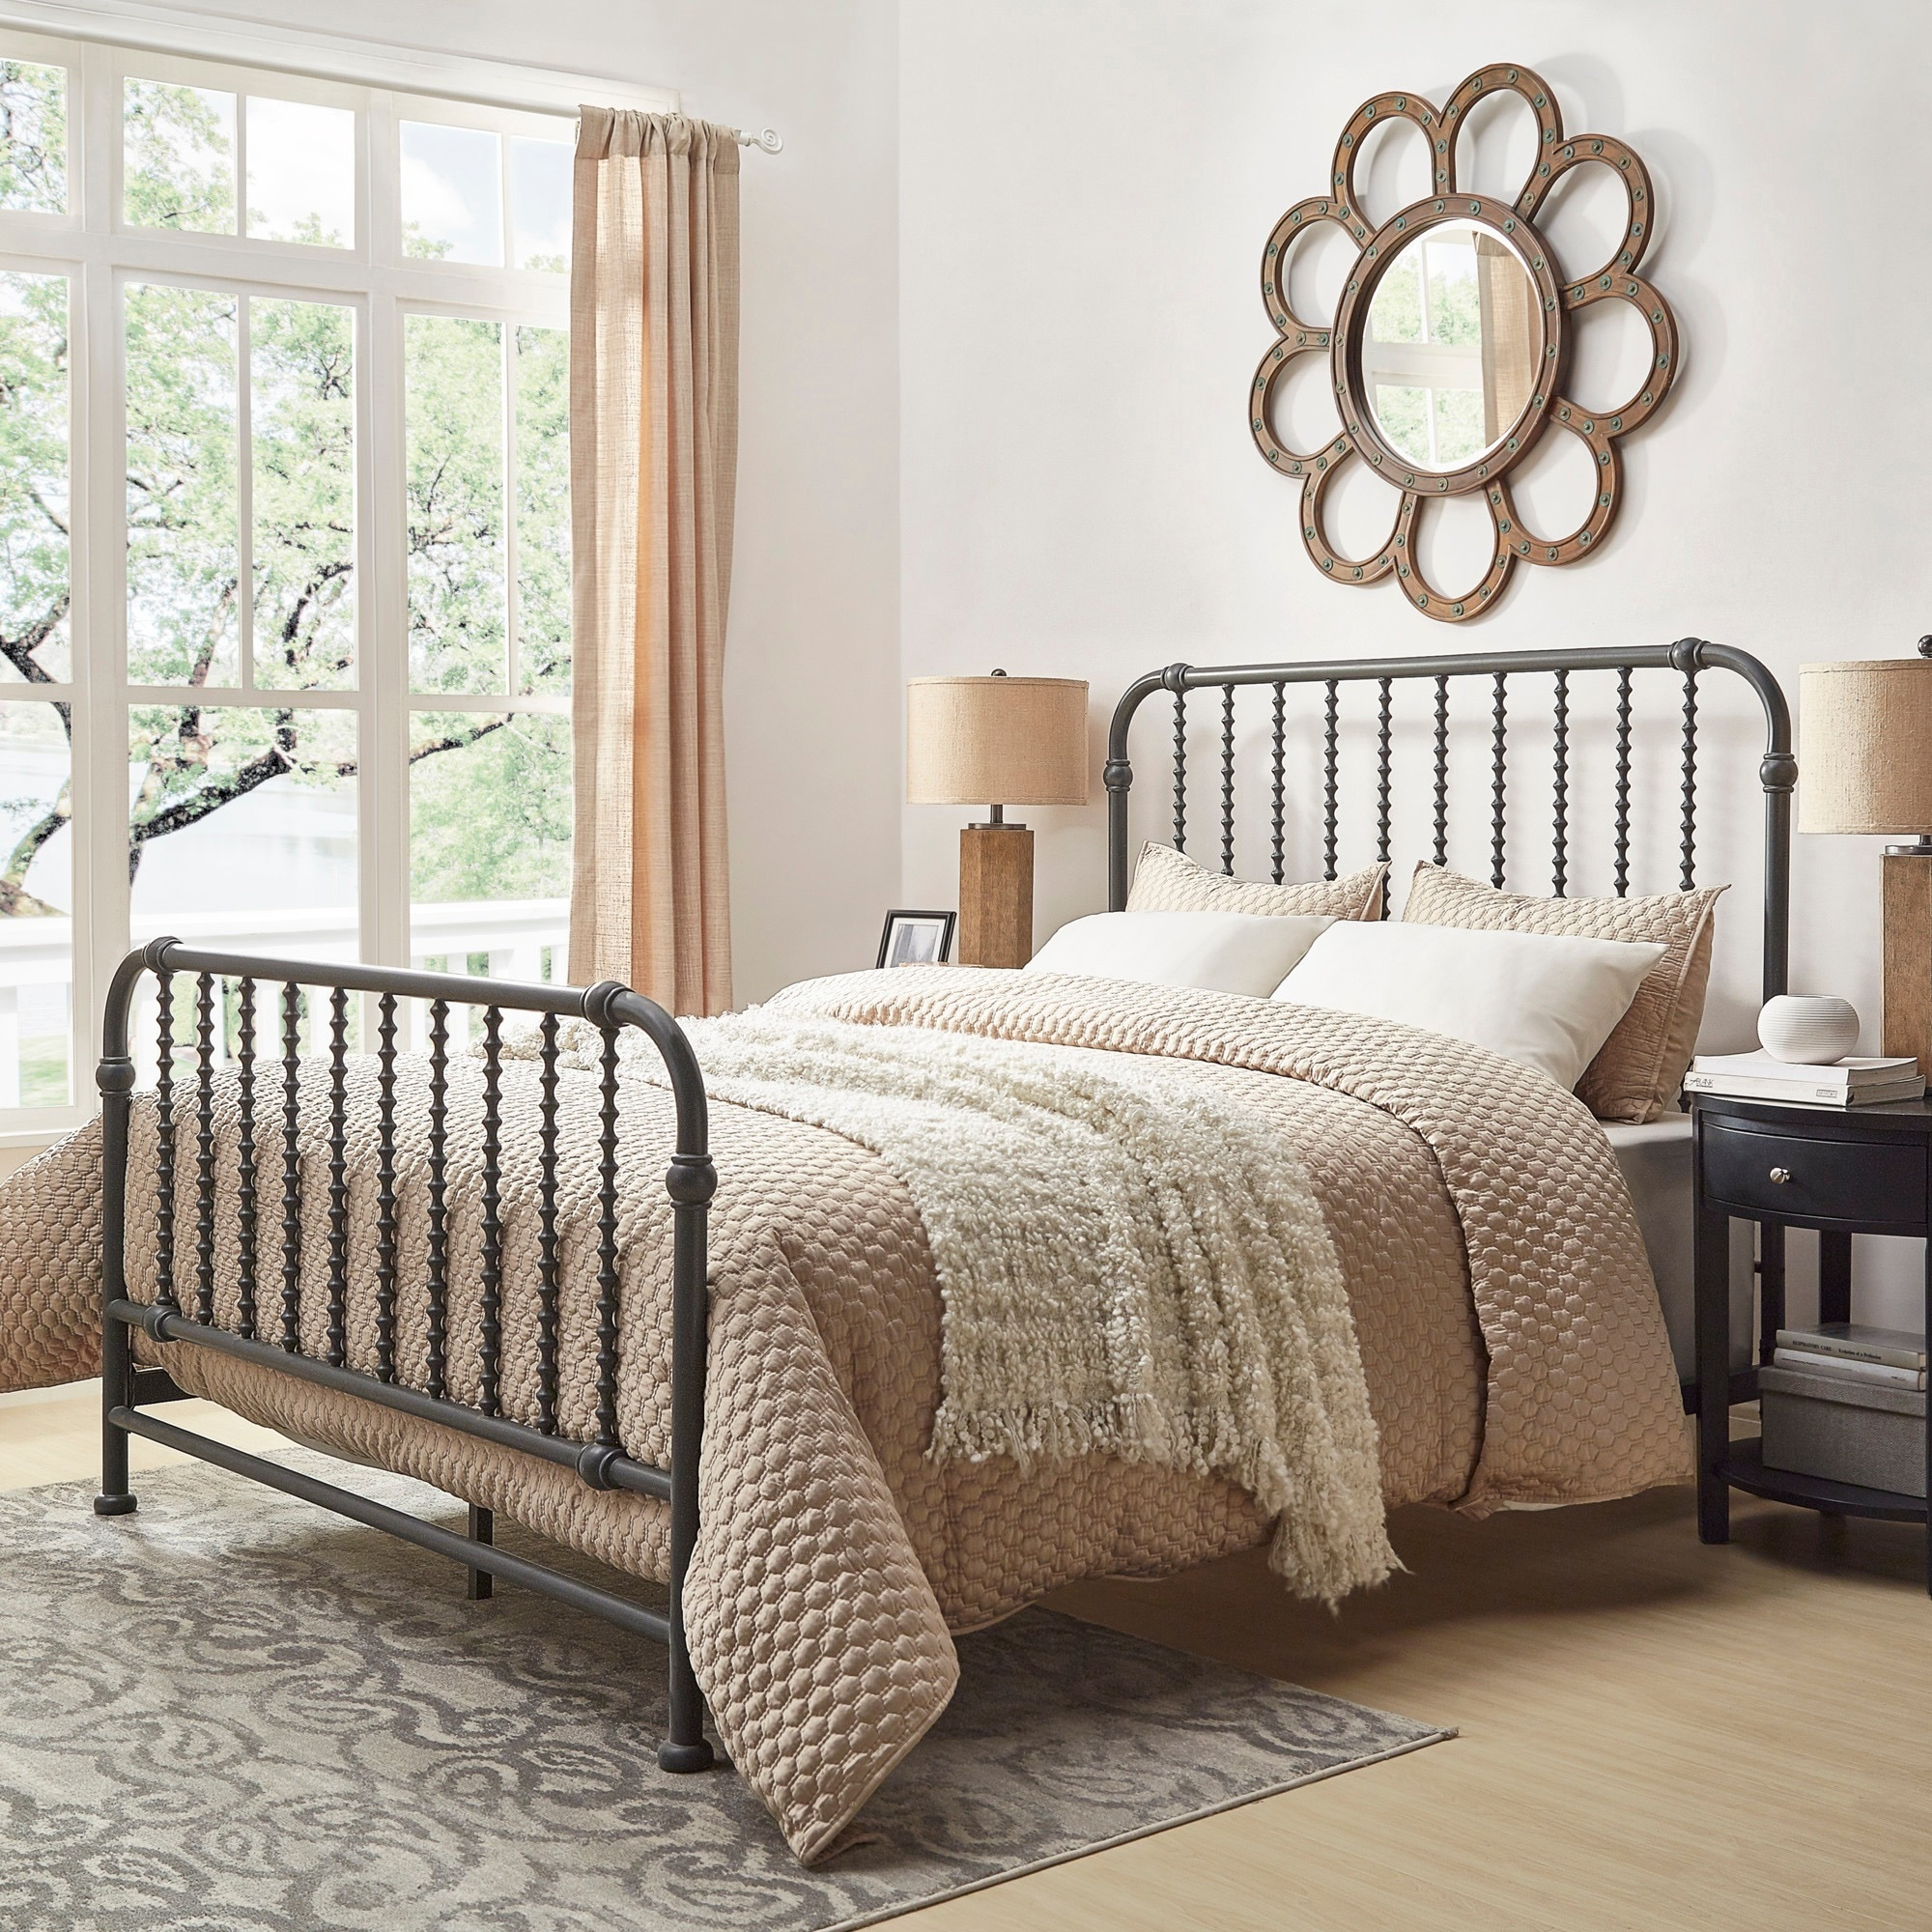 Gulliver Vintage Antique Spiral Full Iron Metal Bed By Inspire Q Bold Overstock 12447384